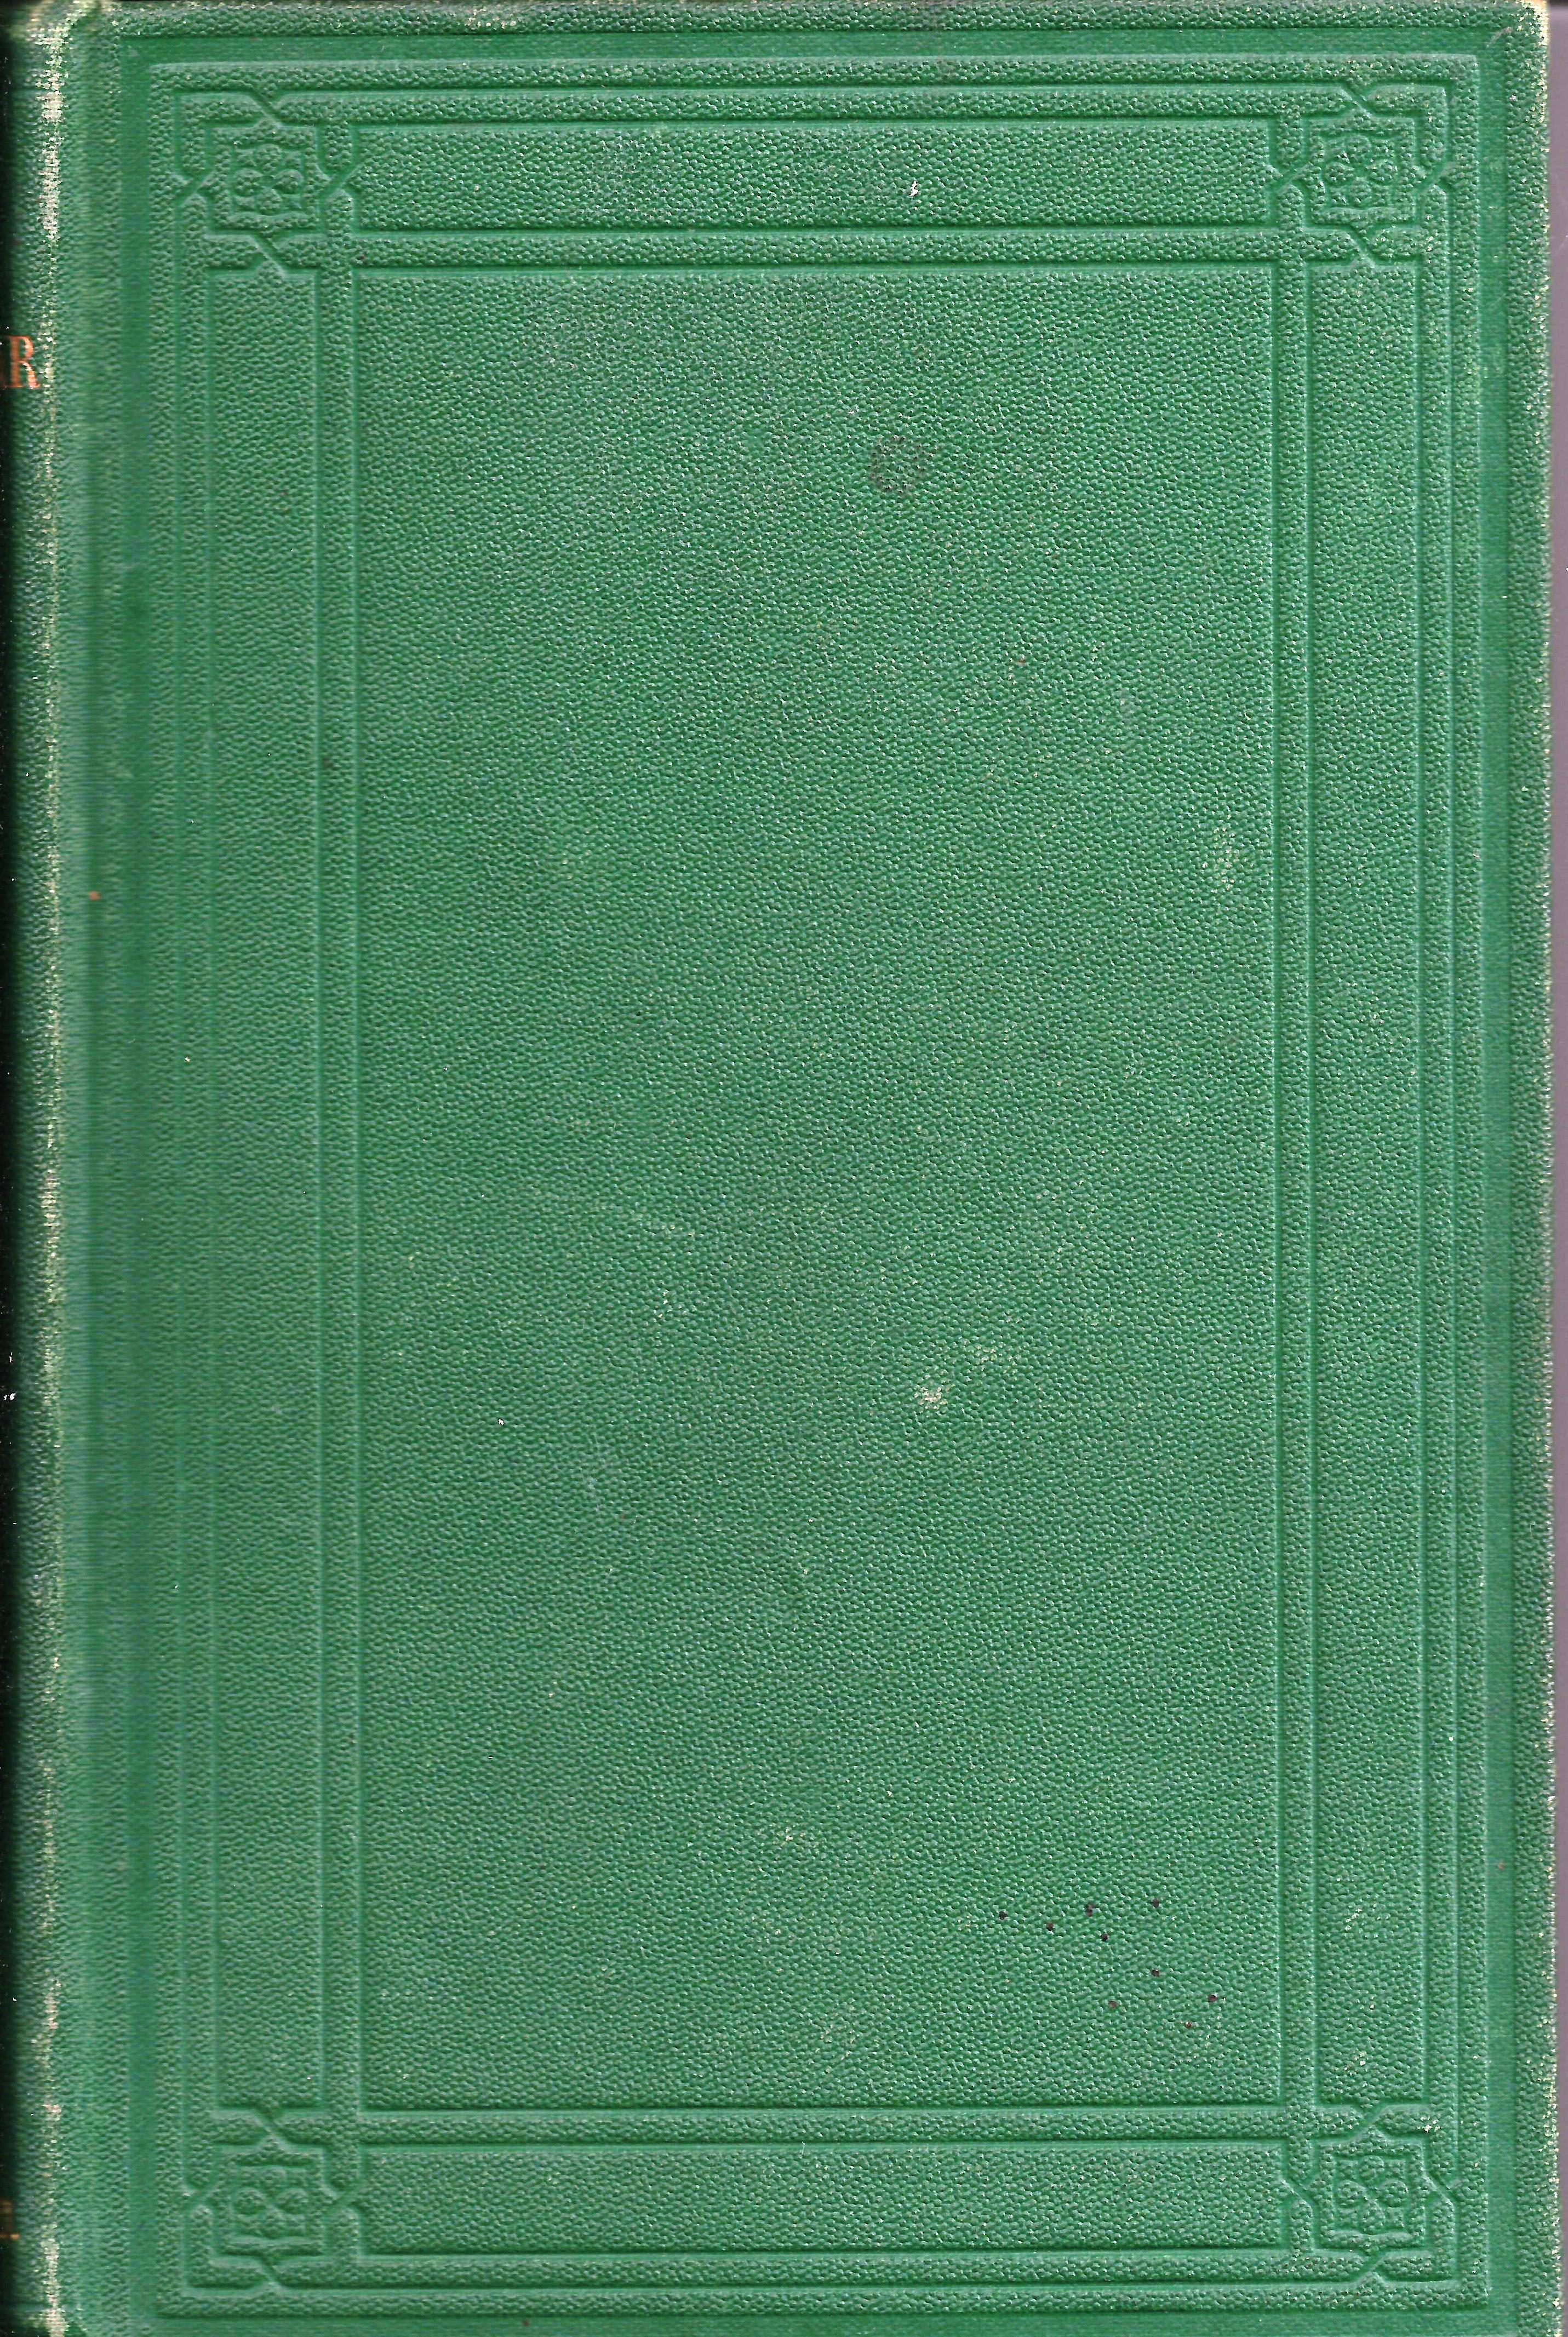 Old Book Covers For Sale : Antiques classifieds antique books